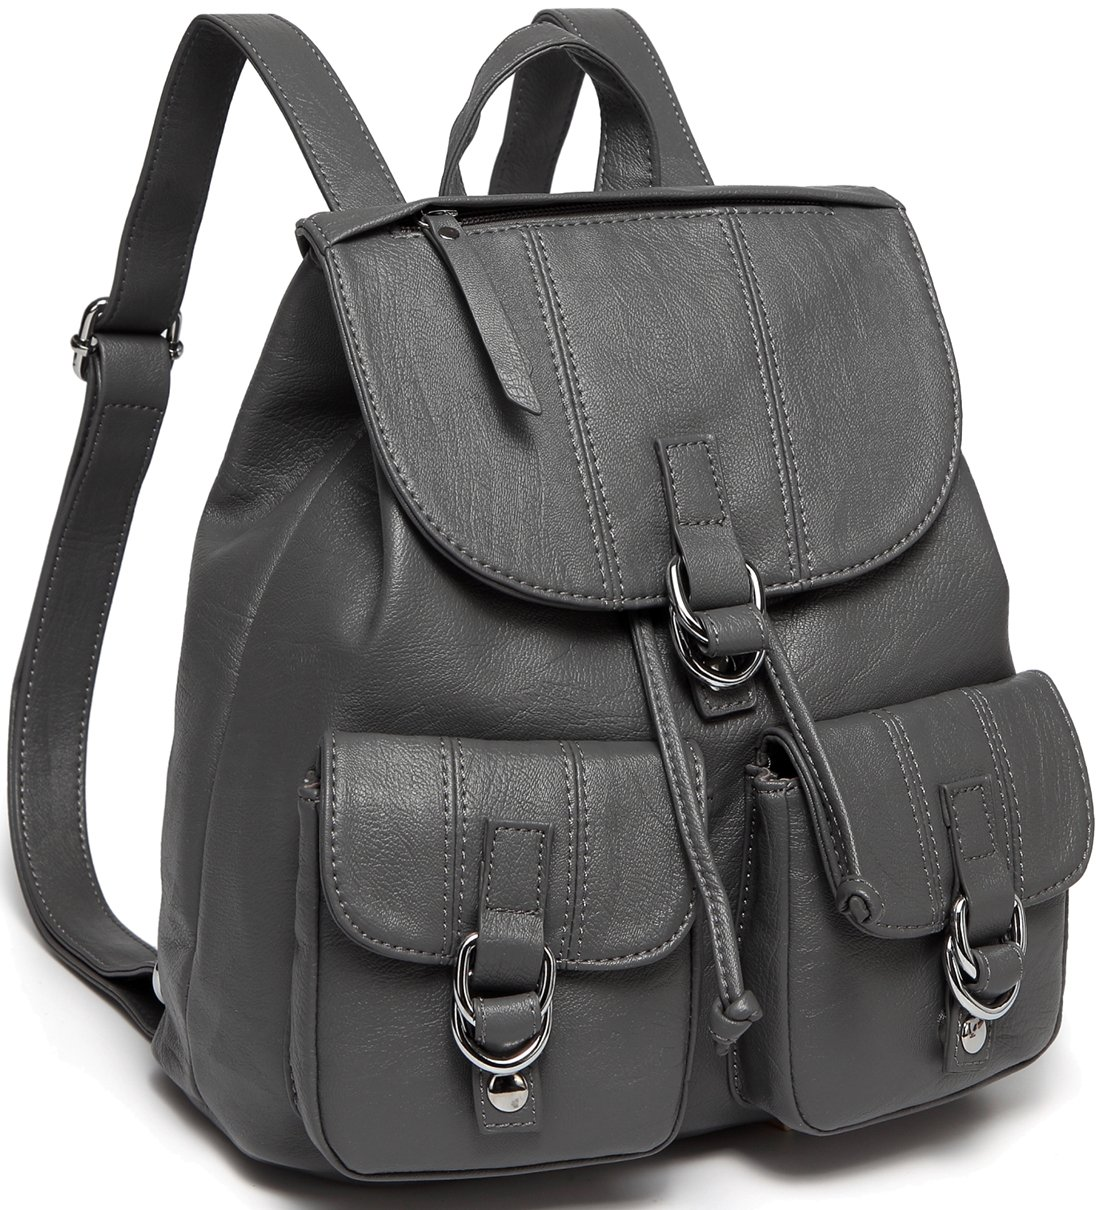 Backpack Purse for Women,VASCHY Fashion Faux Leather Buckle FlapDrawstring Backpack for College with Two Front Pockets Gray by VASCHY